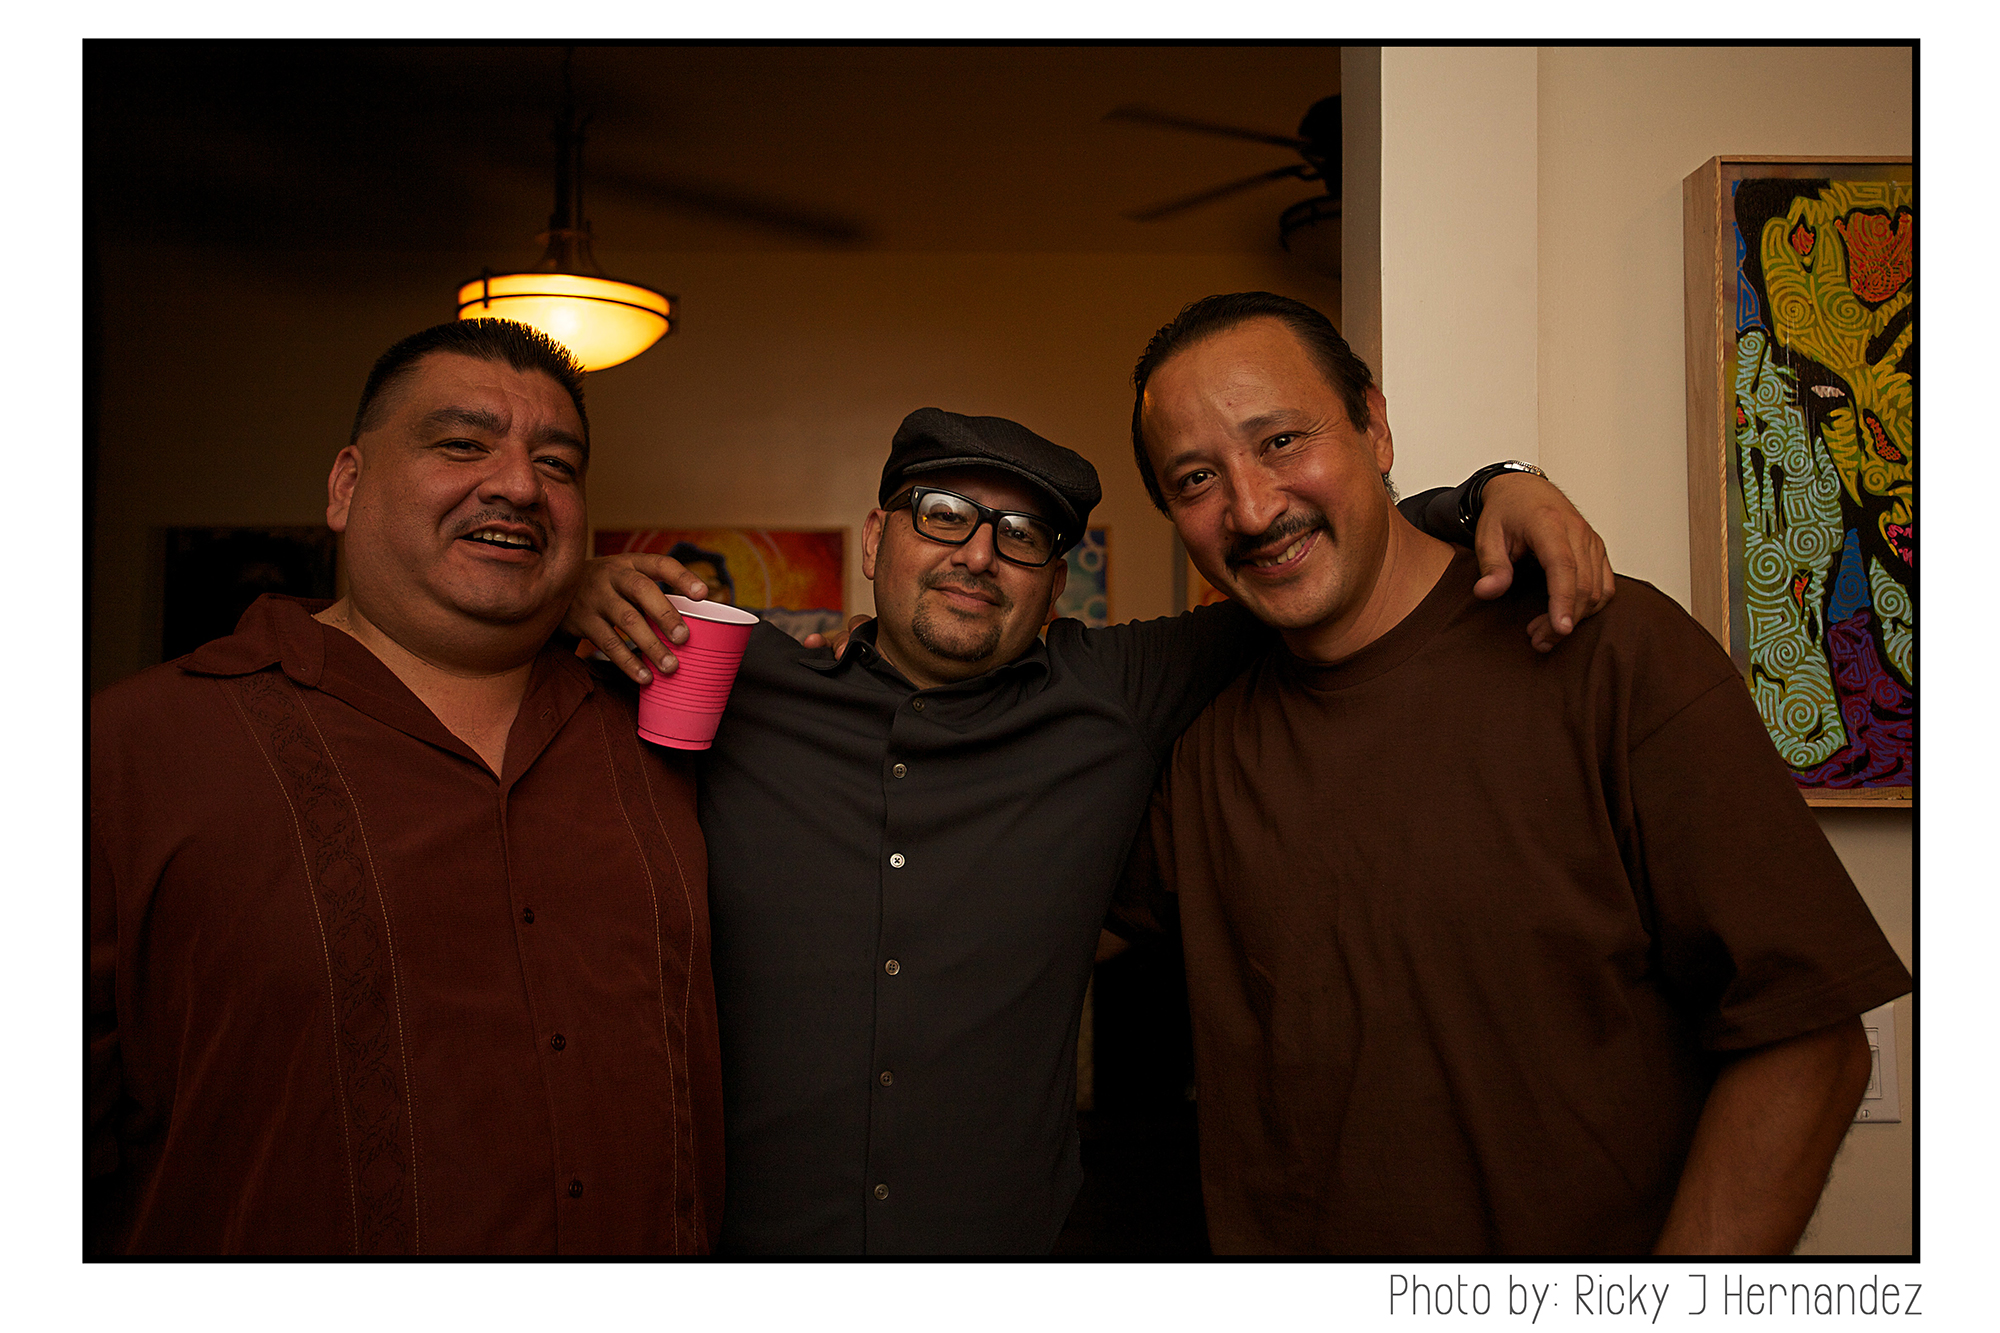 Ricky-J-Hernandez-photography-Oh-poop-I-have-Lupus-art-show-for-Delia-sweet-tooth-in-Privy-studio-Los-Angeles-CA-040